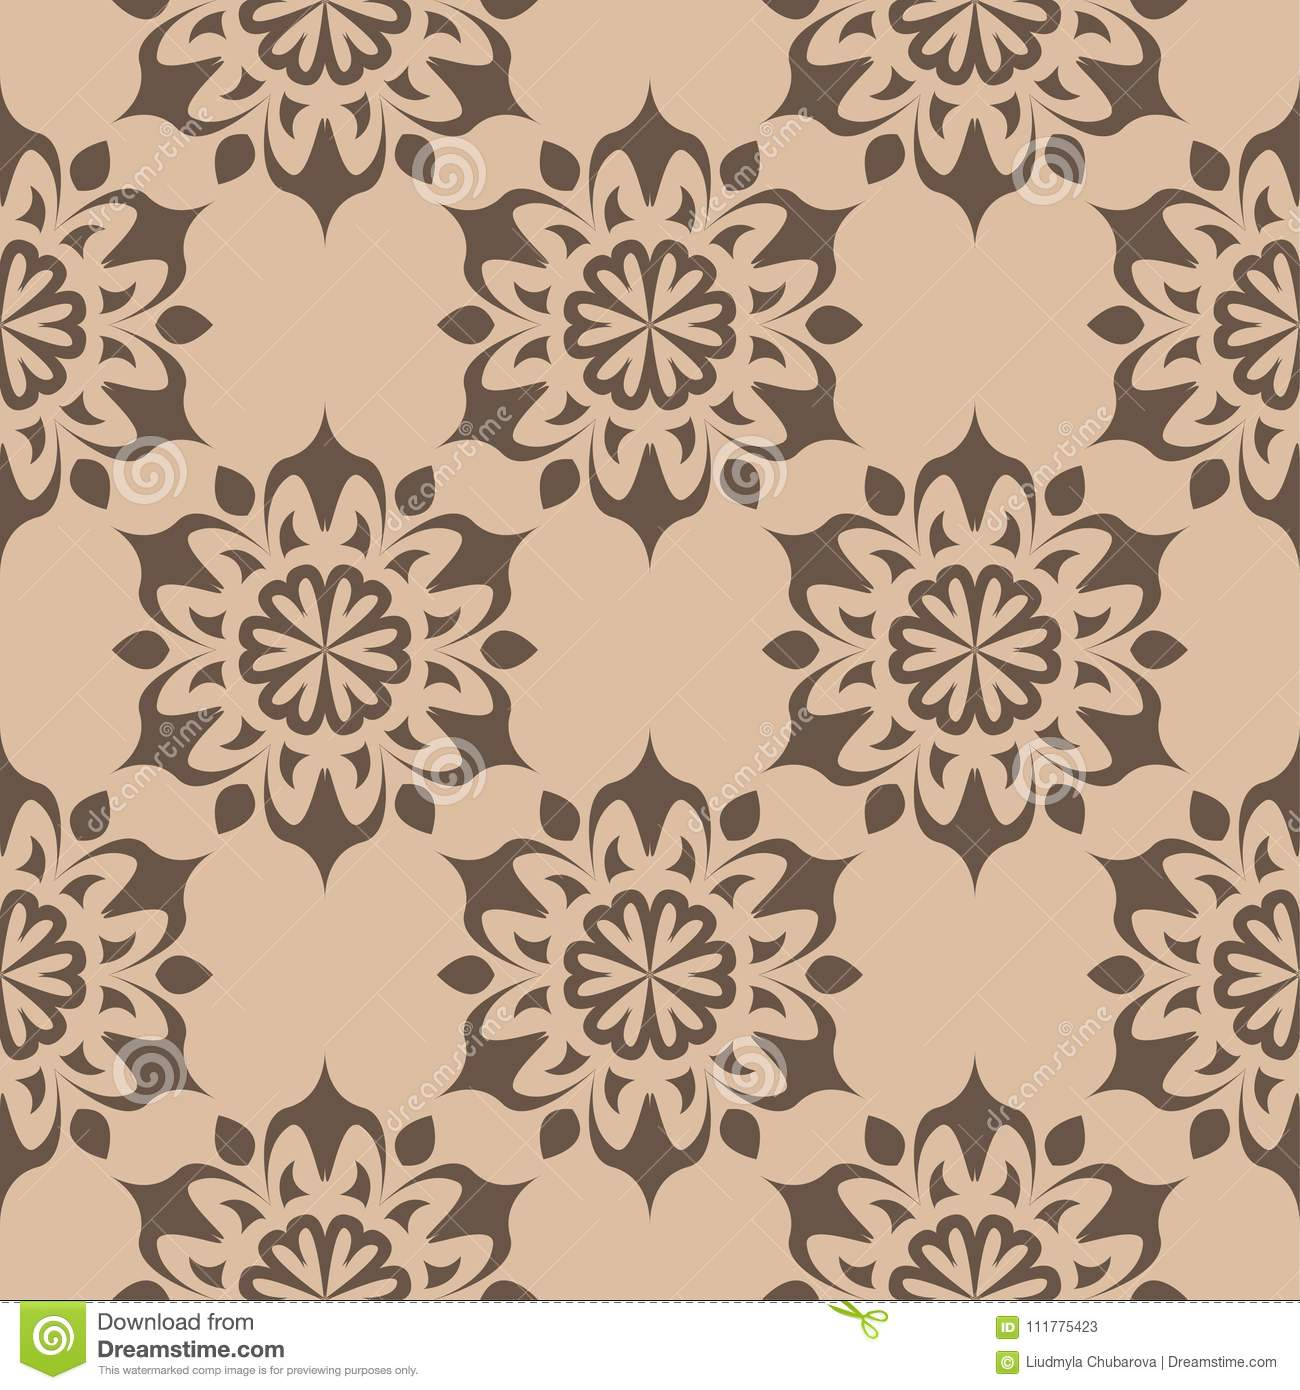 Brown floral ornament on beige background. Seamless pattern